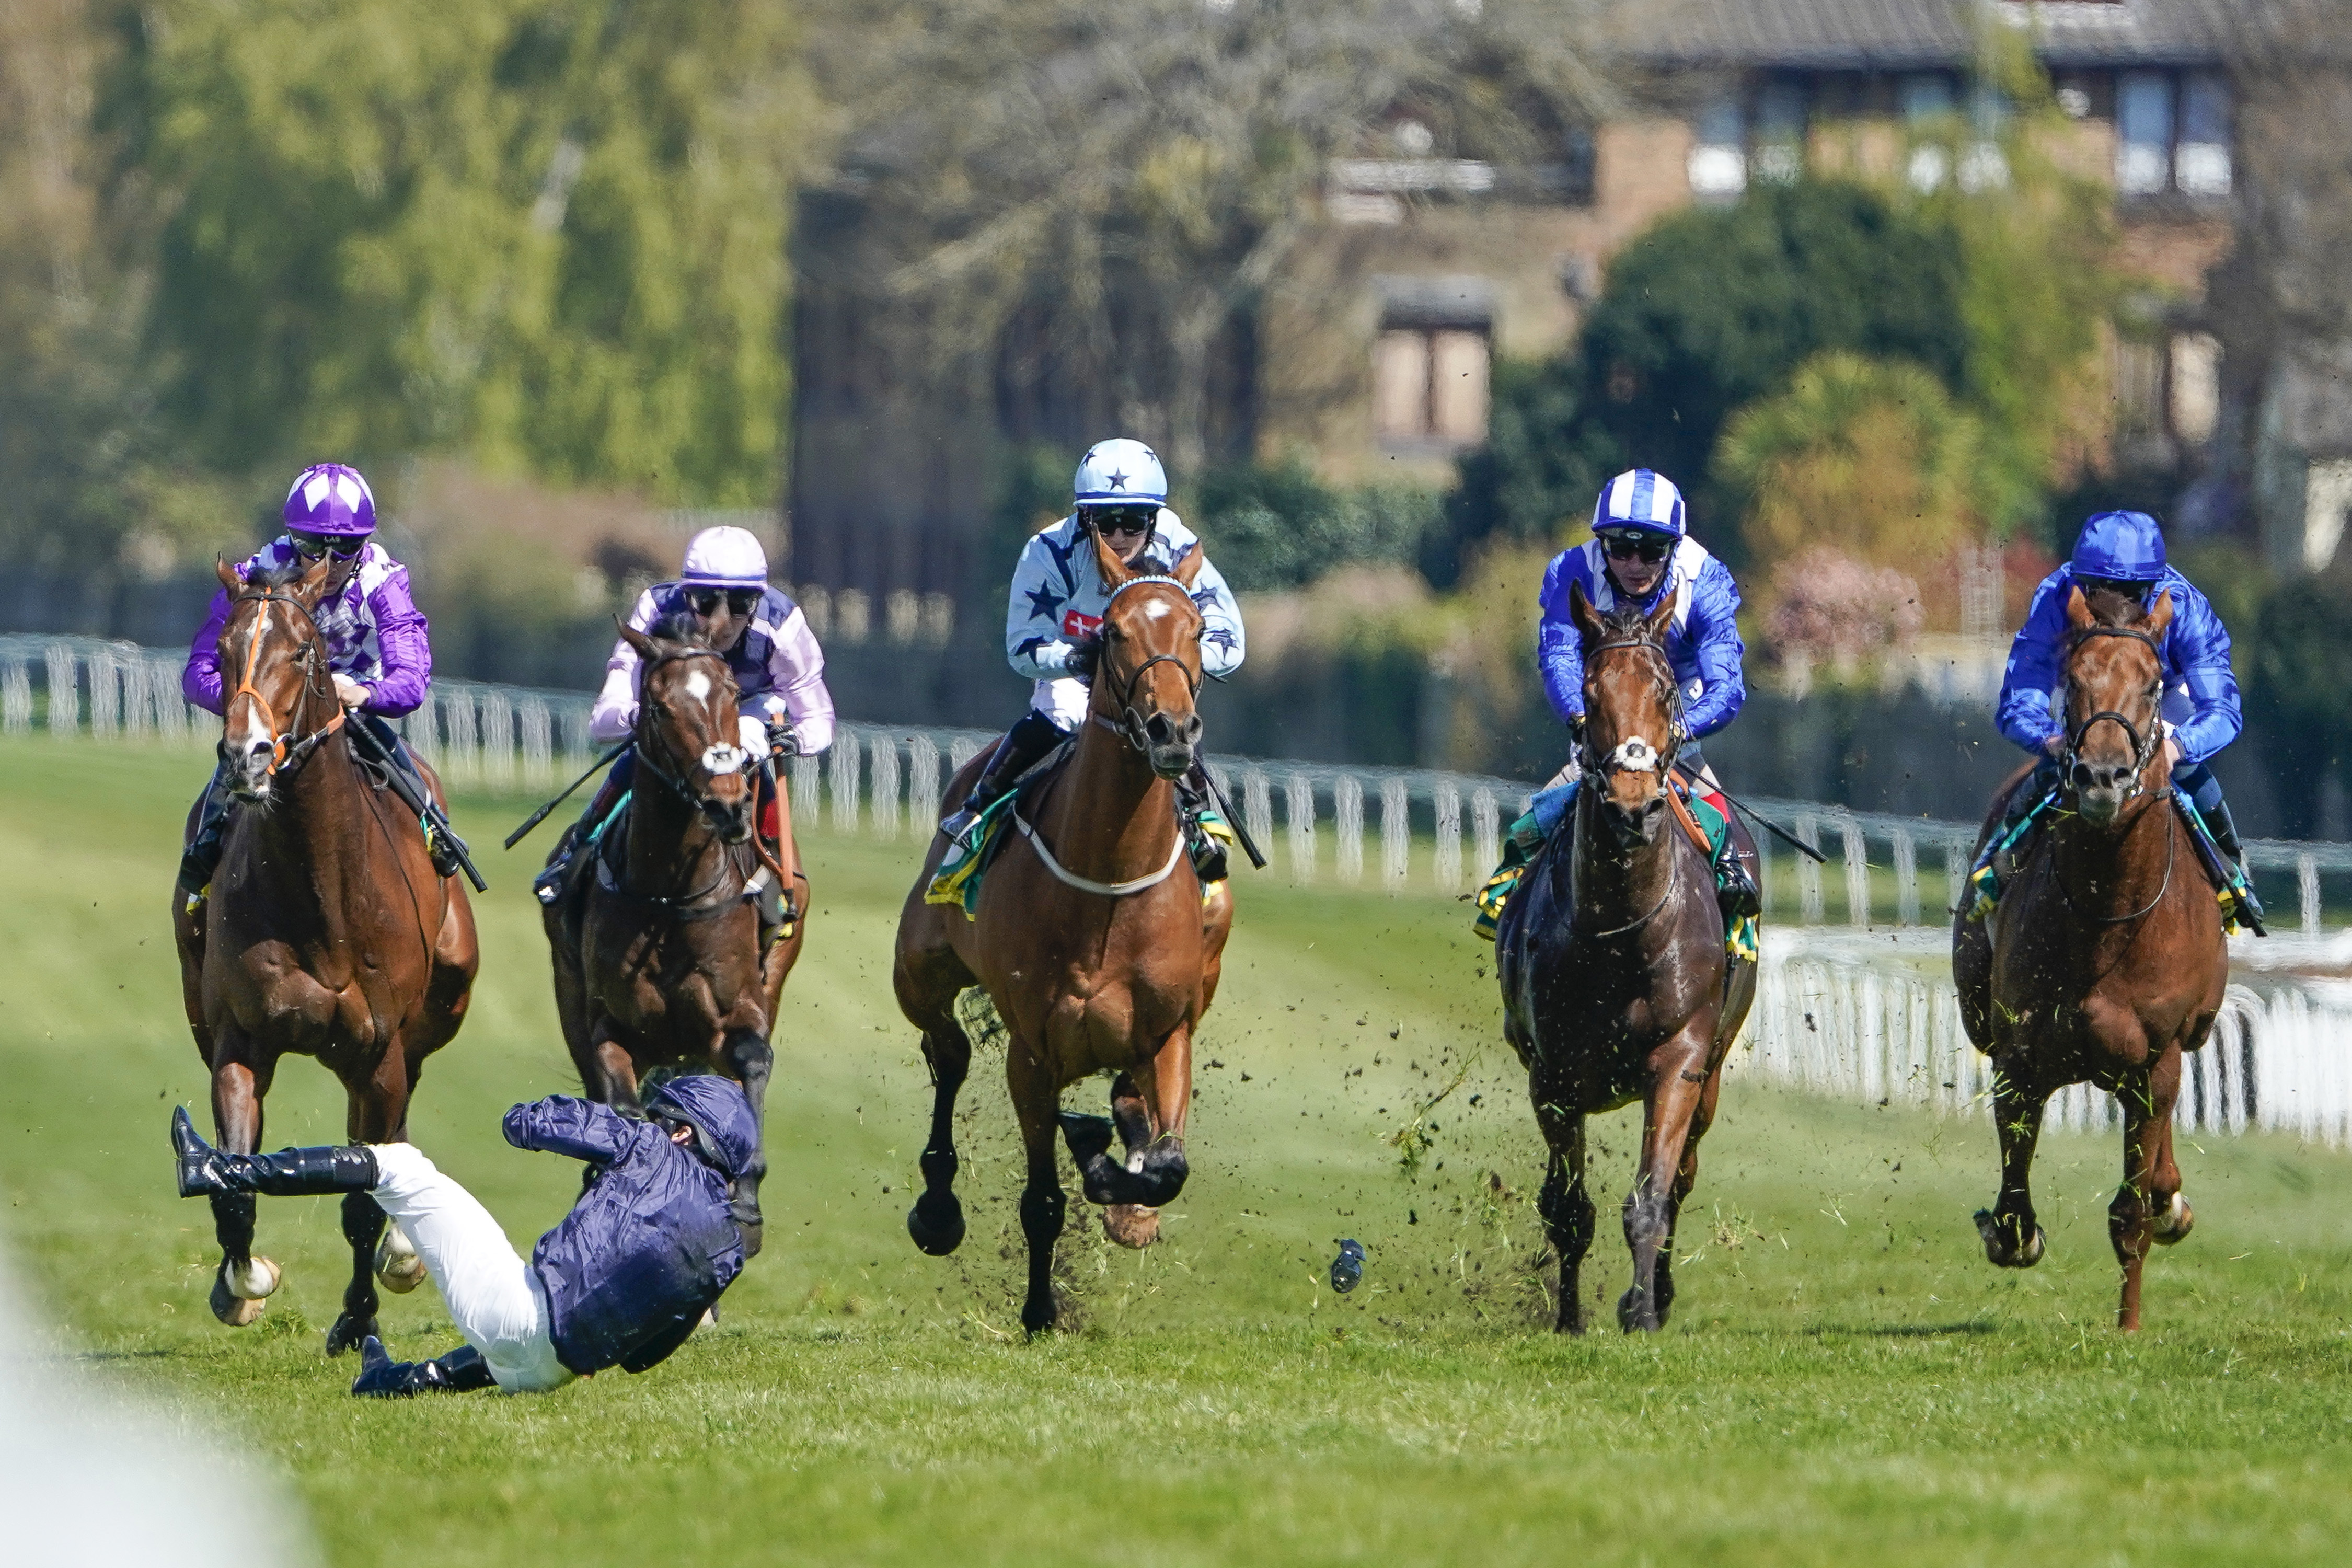 <p>ESHER, ENGLAND - APRIL 23: Ryan Moore falls from Rifleman after it veers when making its challenge inside the final furlong during The bet365 Esher Cup Handicap at Sandown Park Racecourse on April 23, 2021 in Esher, England. Sporting venues around the UK remain under restrictions due to the Coronavirus Pandemic. Only owners are allowed to attend the meeting but the public must wait until further restrictions are lifted. (Photo by Alan Crowhurst/Getty Images)</p>